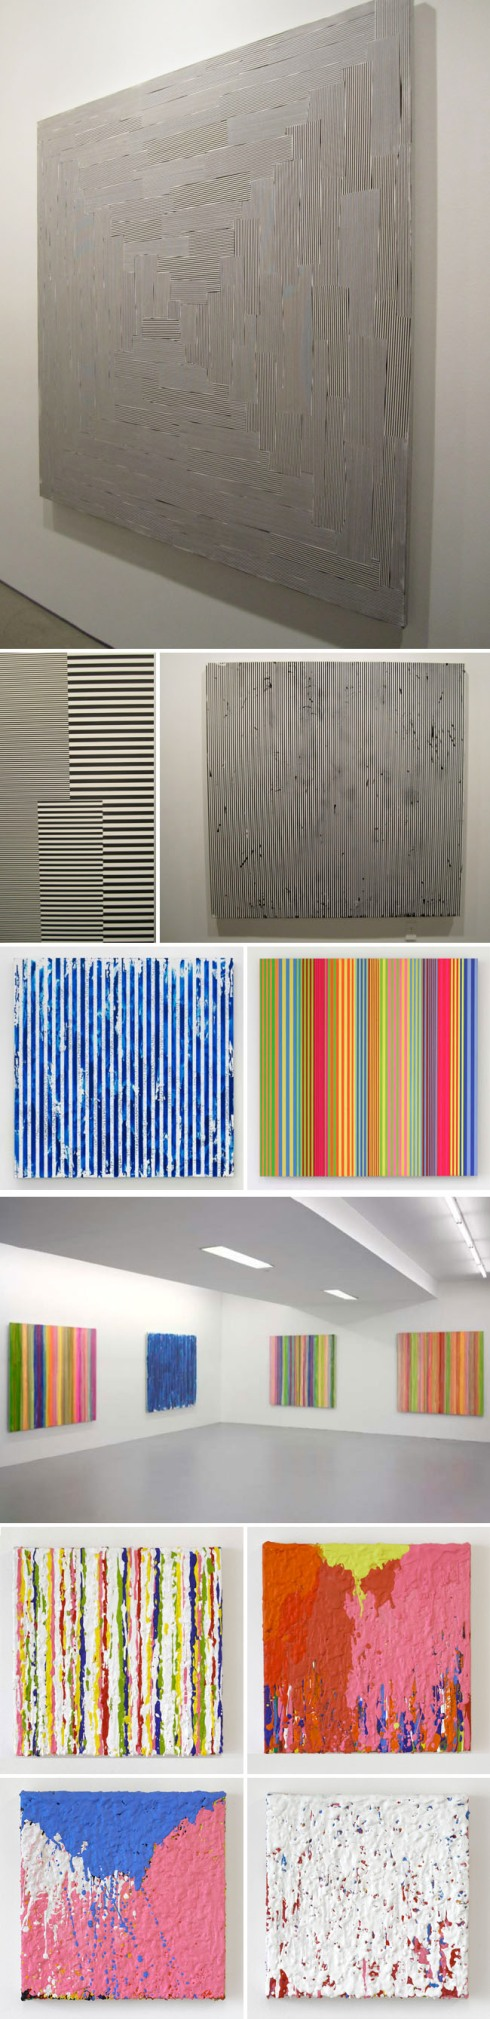 Optical Paintings, black and white line paintings, enamel on aluminum, geometric abstraction paintings, Gering & Lopez